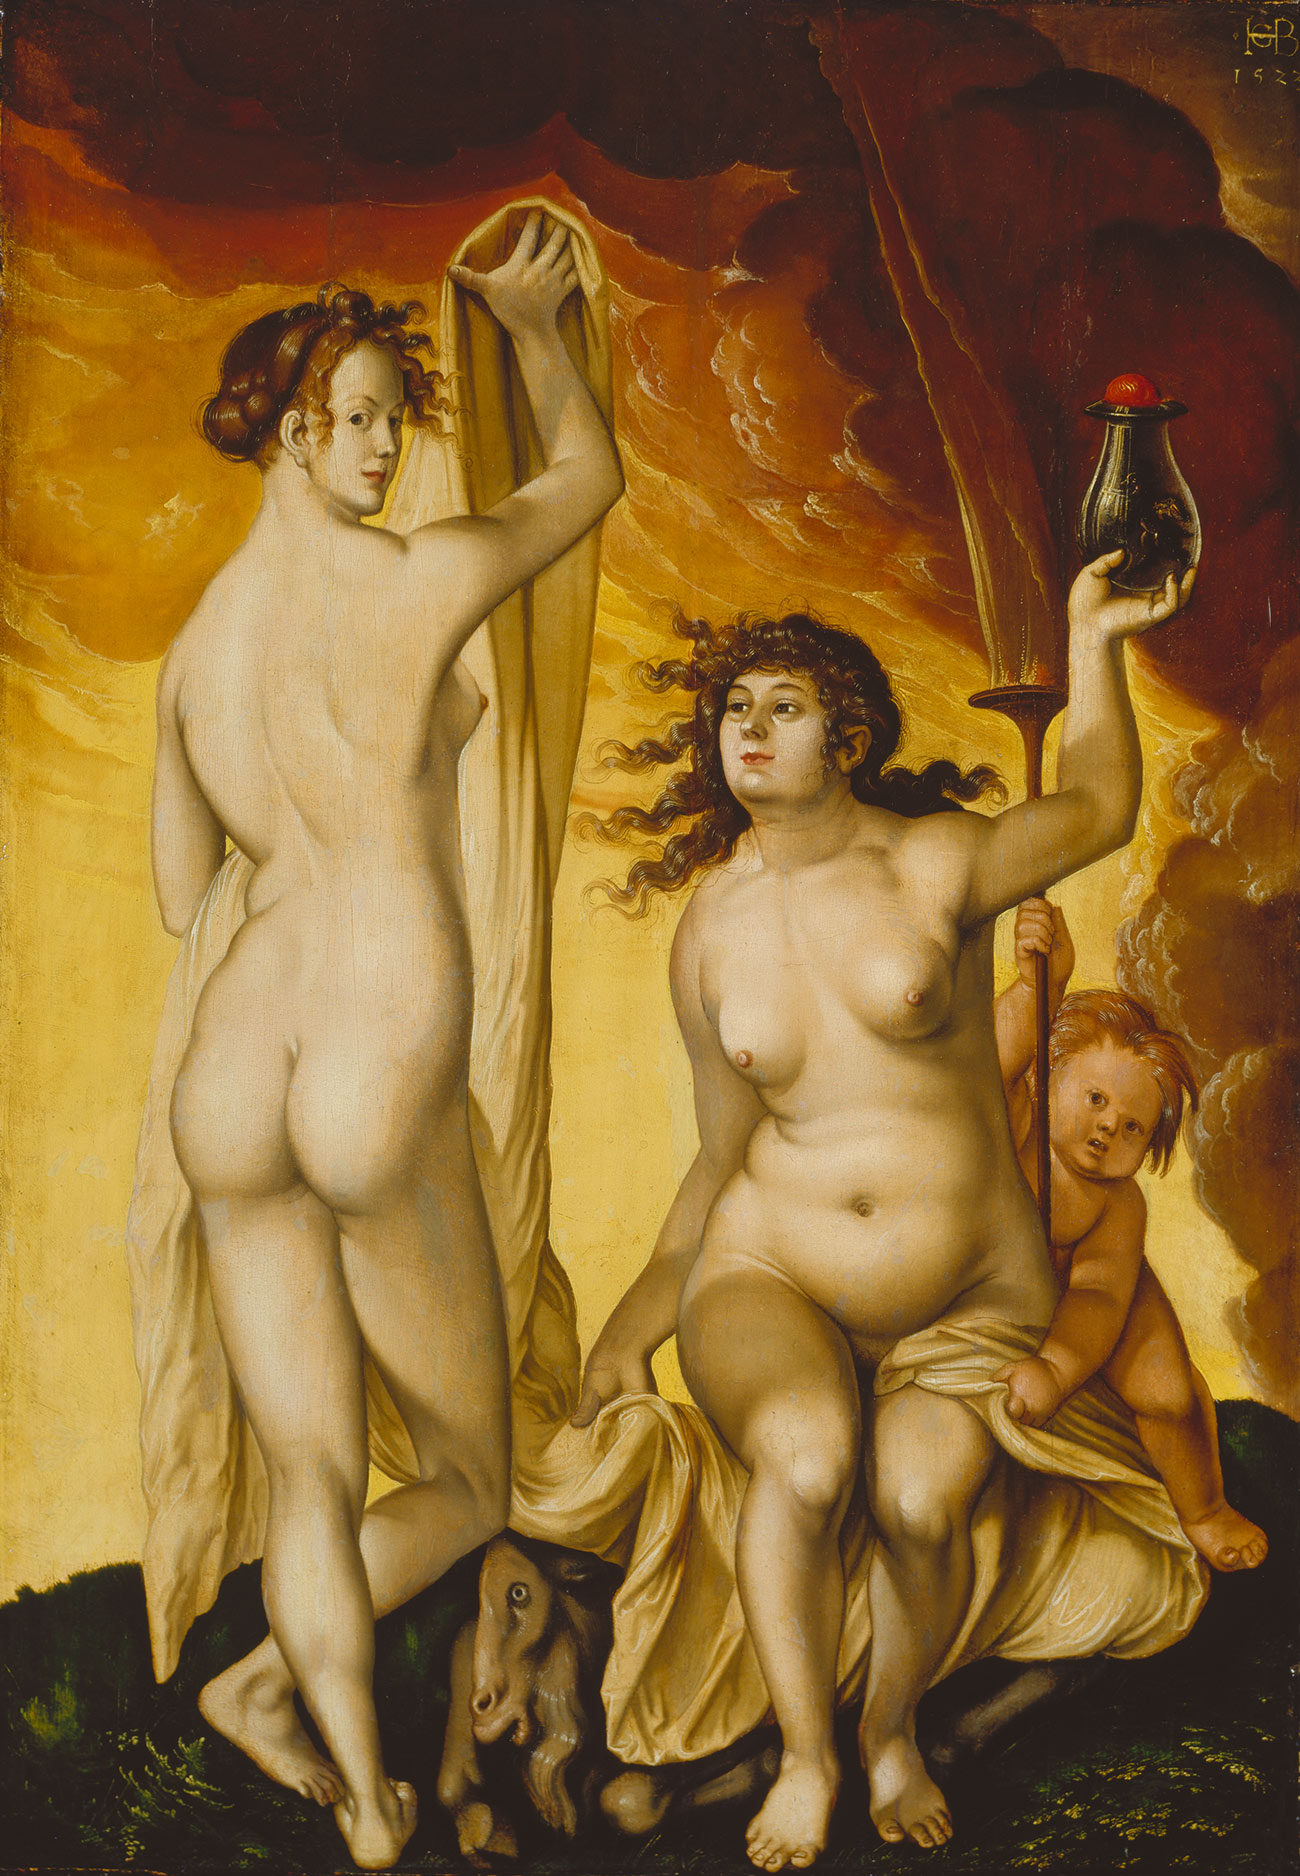 Hans Baldung Grien, Two Witches, 1523, oil on bass wood, 30 13/16 × 23 11/16 inches (Städel Museum, Frankfurt am Main)